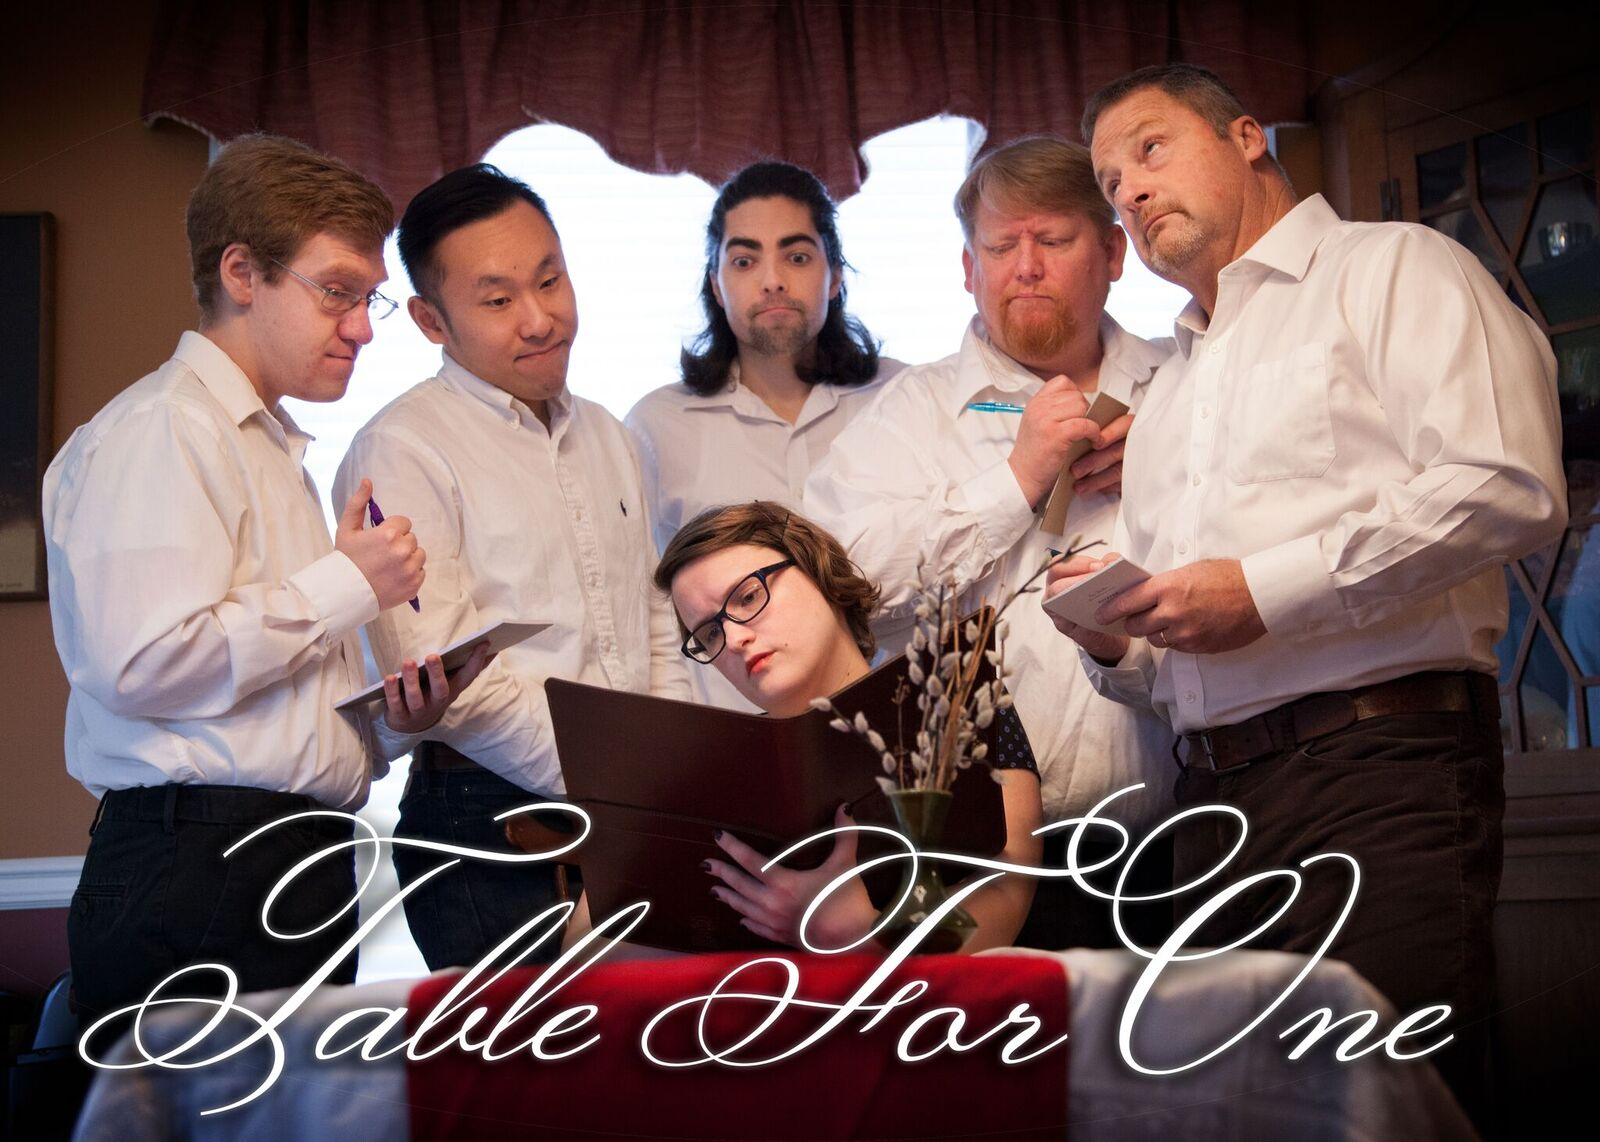 House team Table For One takes the stage to perform the classic long-form improvisational format The Harold!